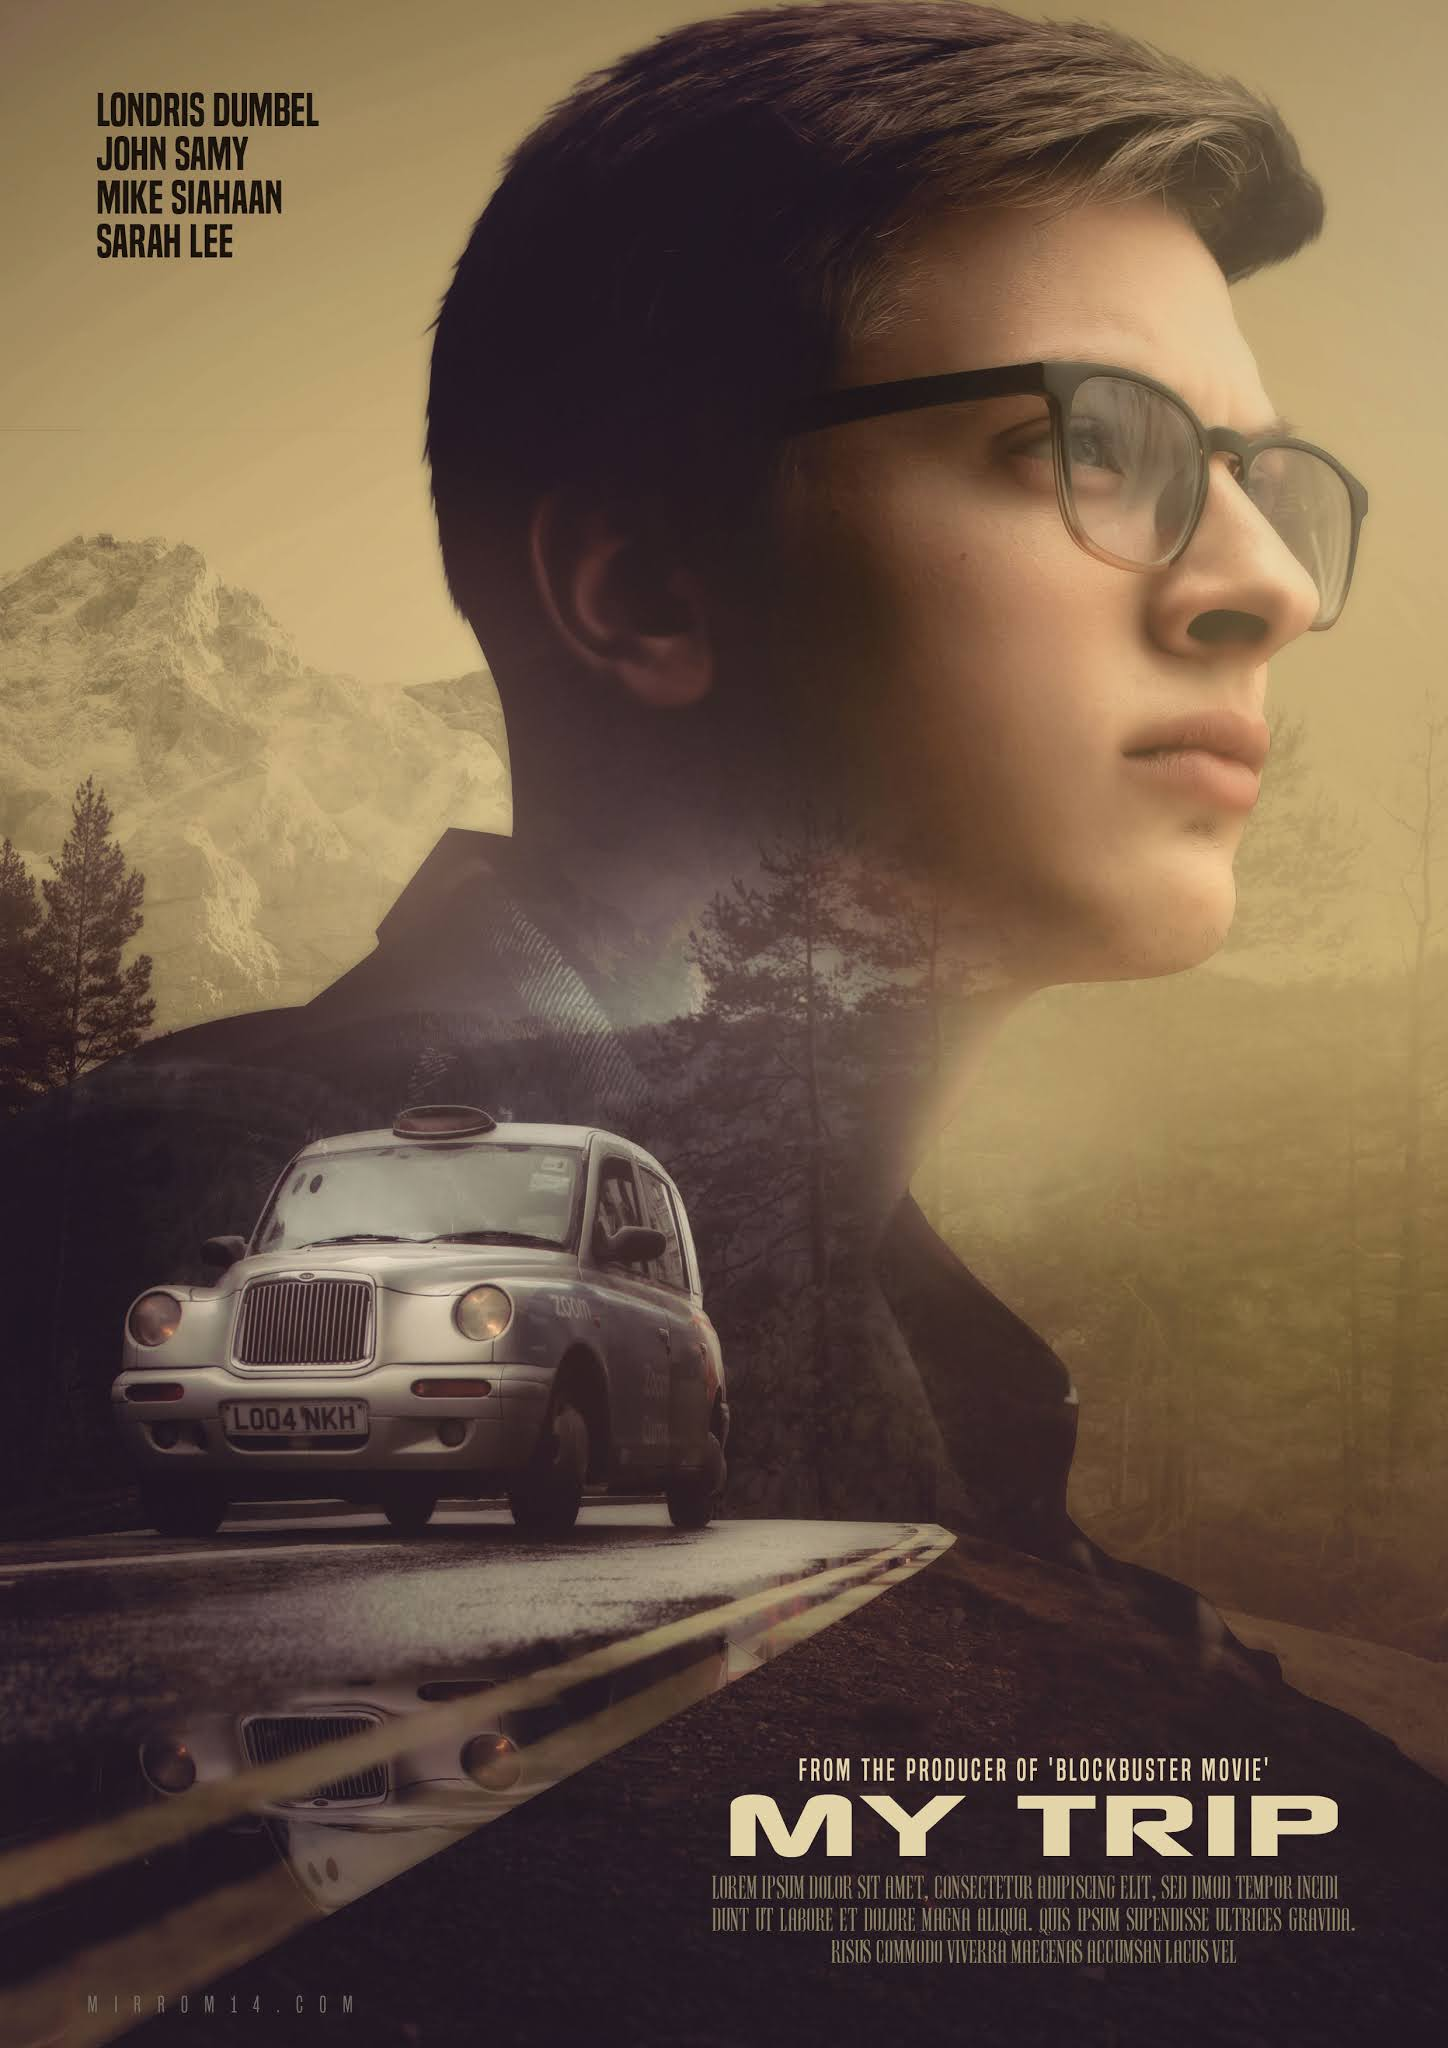 How to Create Advanced Cinematic Movie Poster Design in Photoshop Tutorial